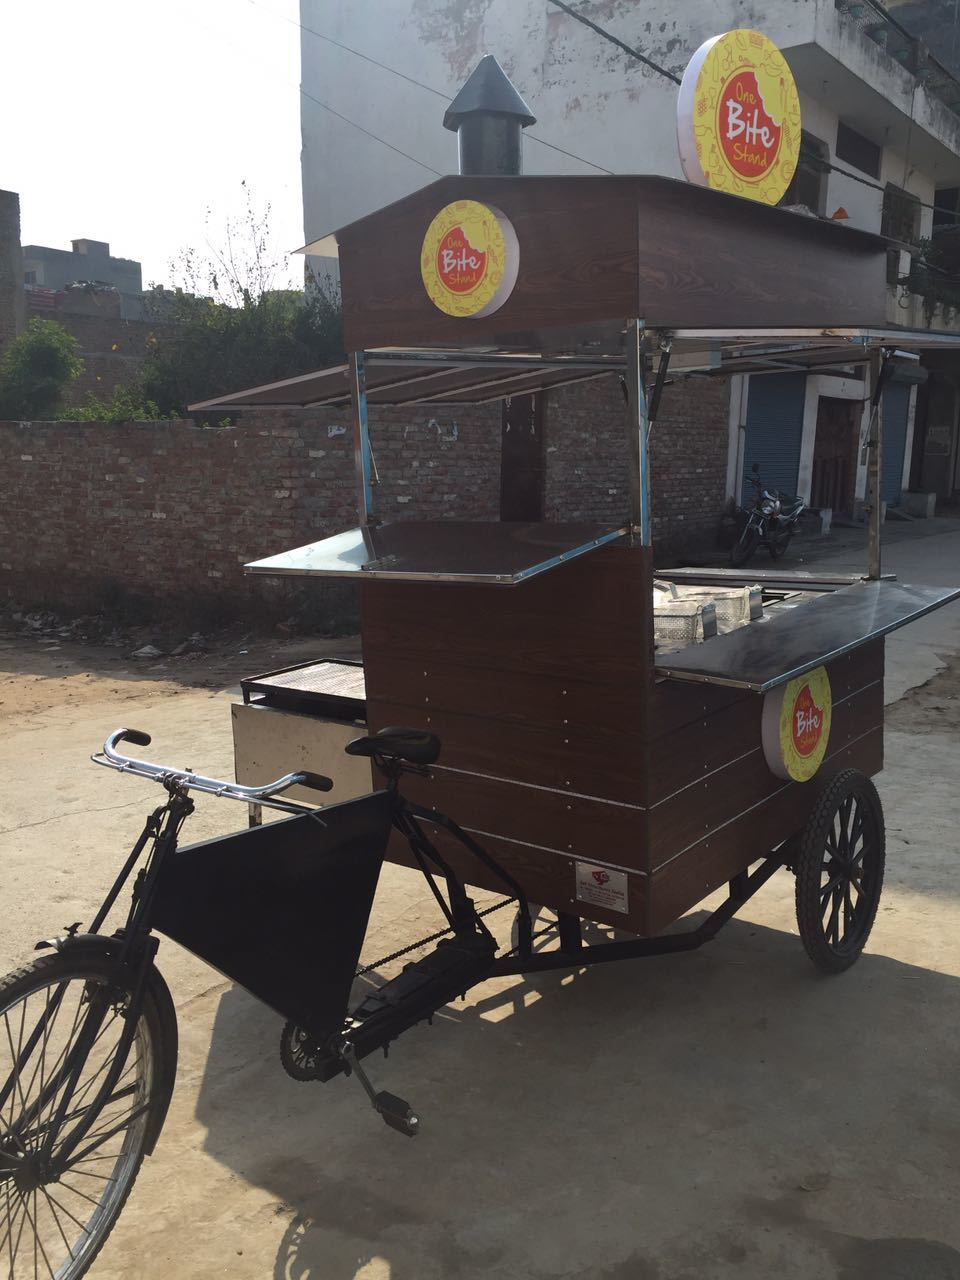 Bar-be-que on tricycle